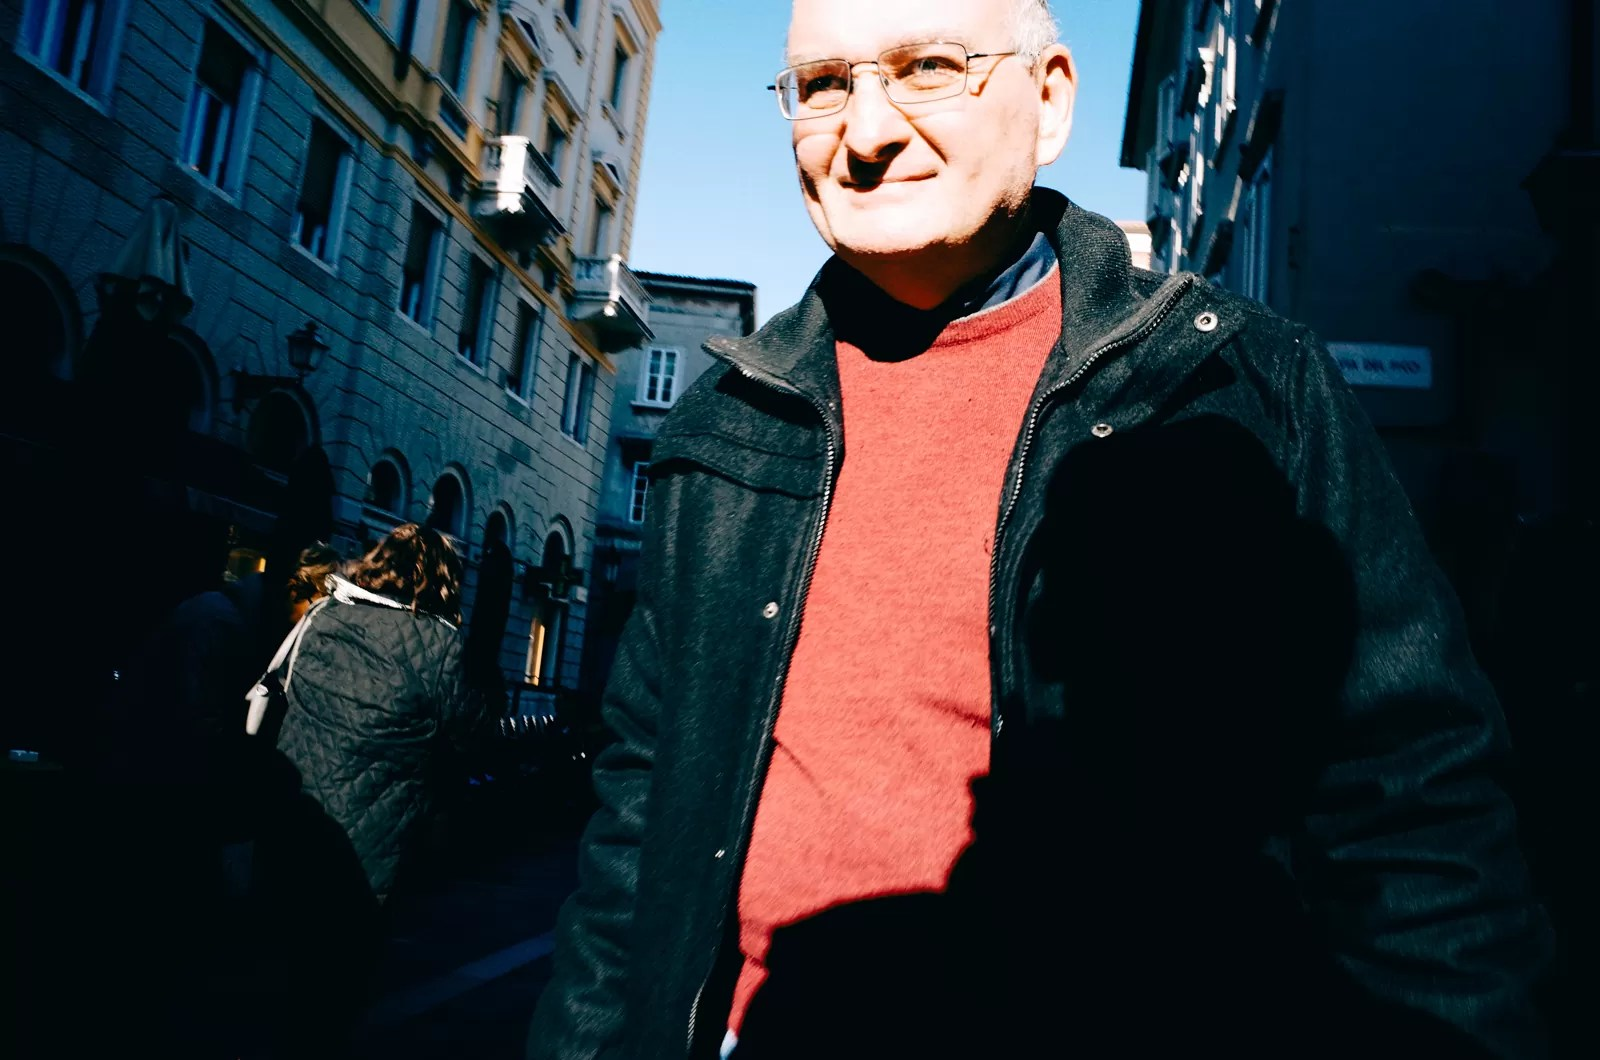 R0006797 - One Day in Trieste [Color Street Photography] - fotostreet.it